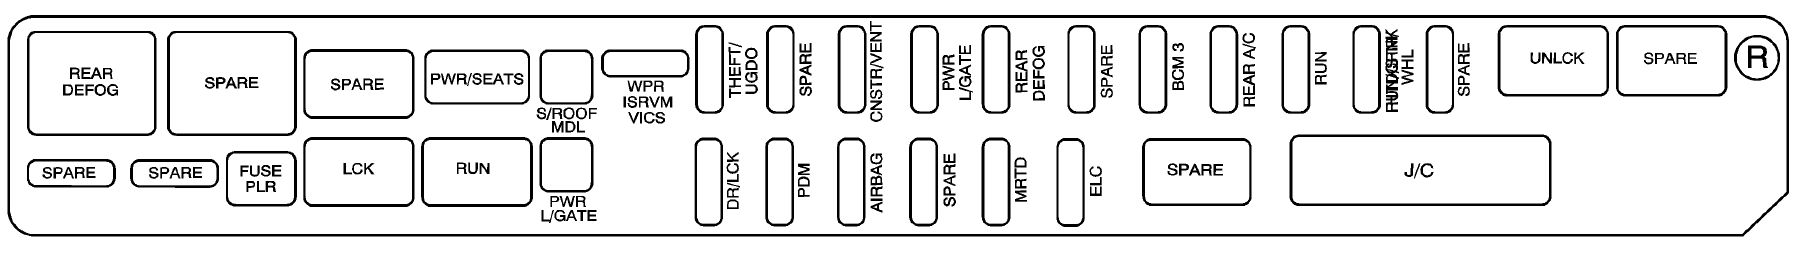 [DIAGRAM_5NL]  DIAGRAM> 2004 Cadillac Srx Fuse Diagram FULL Version HD Quality Fuse Diagram  - USE-CASEDIAGRAM.PAVIABAROCCA.IT | 2004 Srx Fuse Box |  | Diagram Database